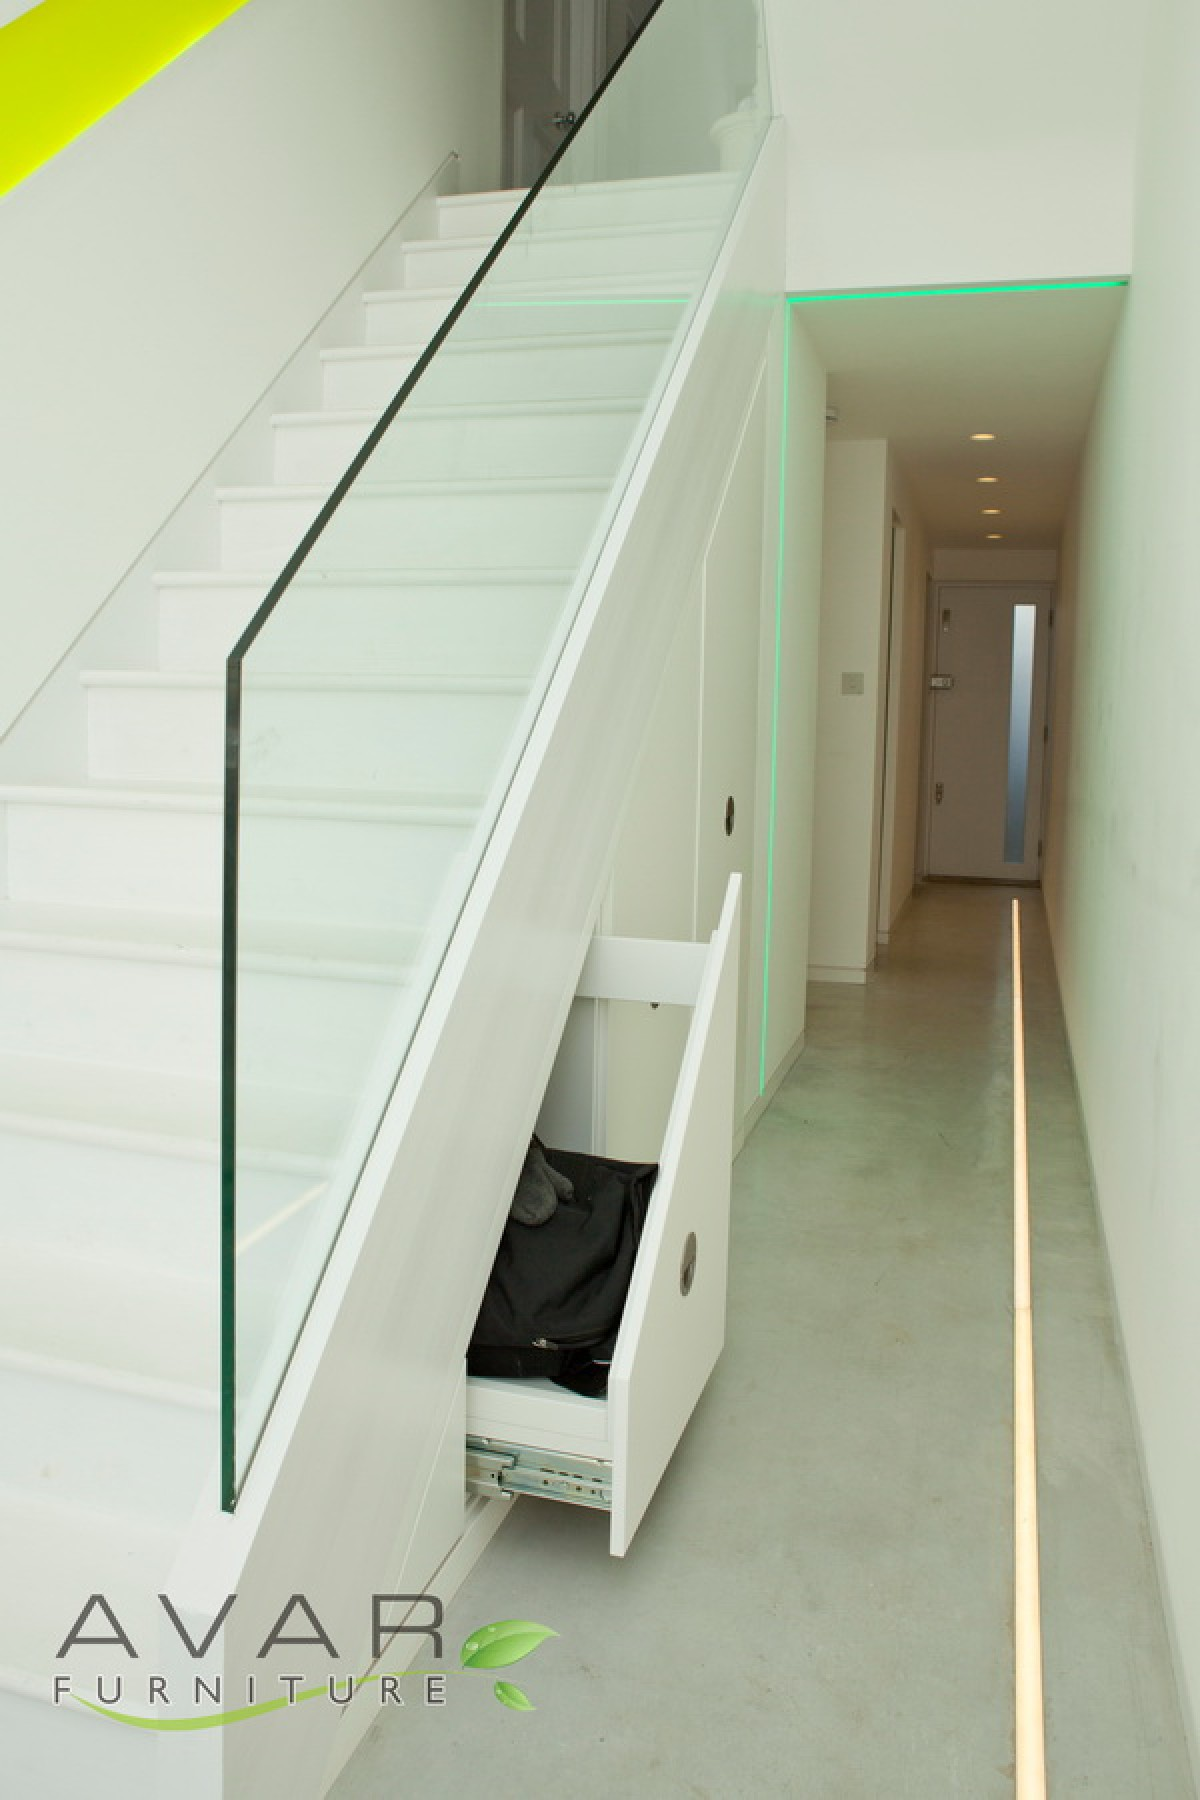 ƸӜƷ Under Stairs Storage Ideas Gallery 6 North London Uk Avar Furniture